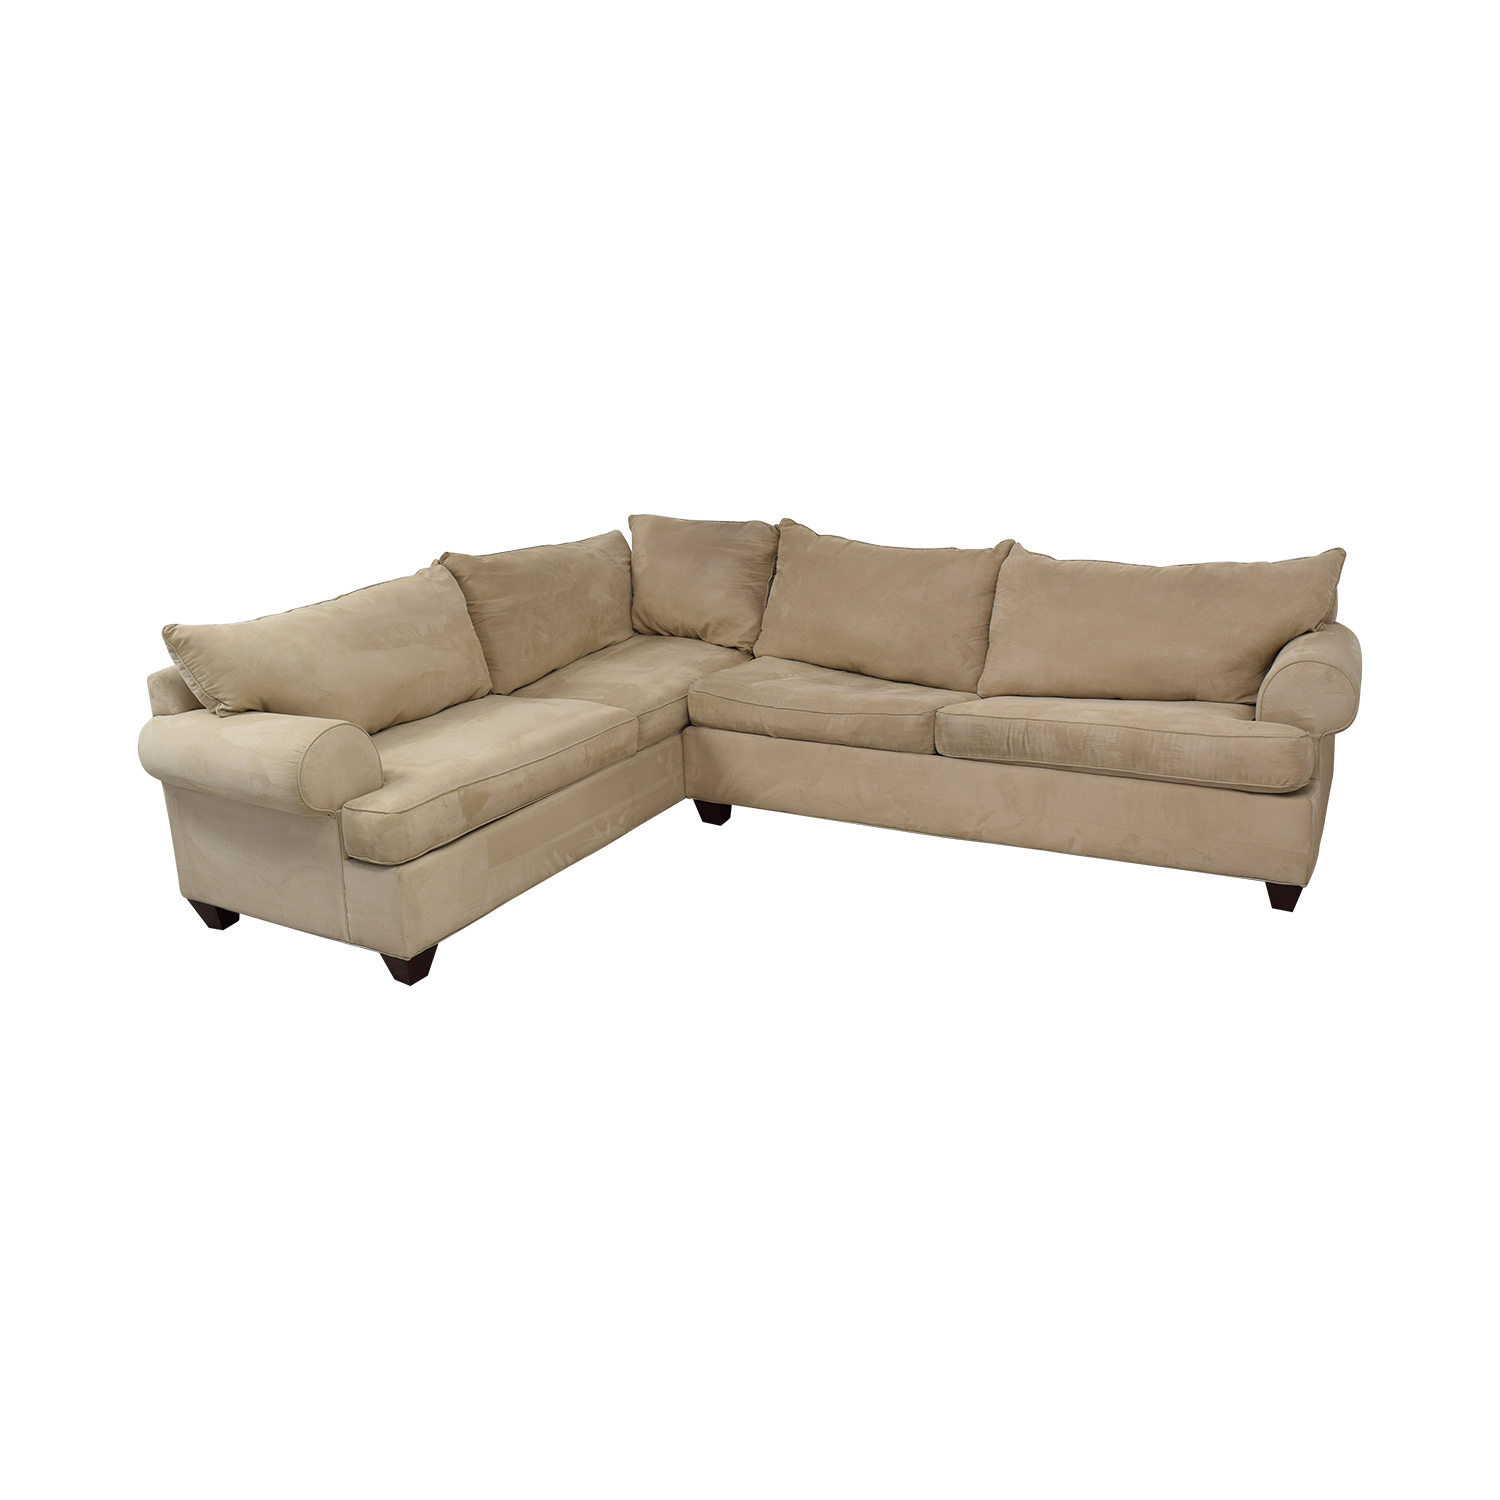 shop Raymour & Flanigan Raymour & Flanigan Queen Sleeper Sectional online